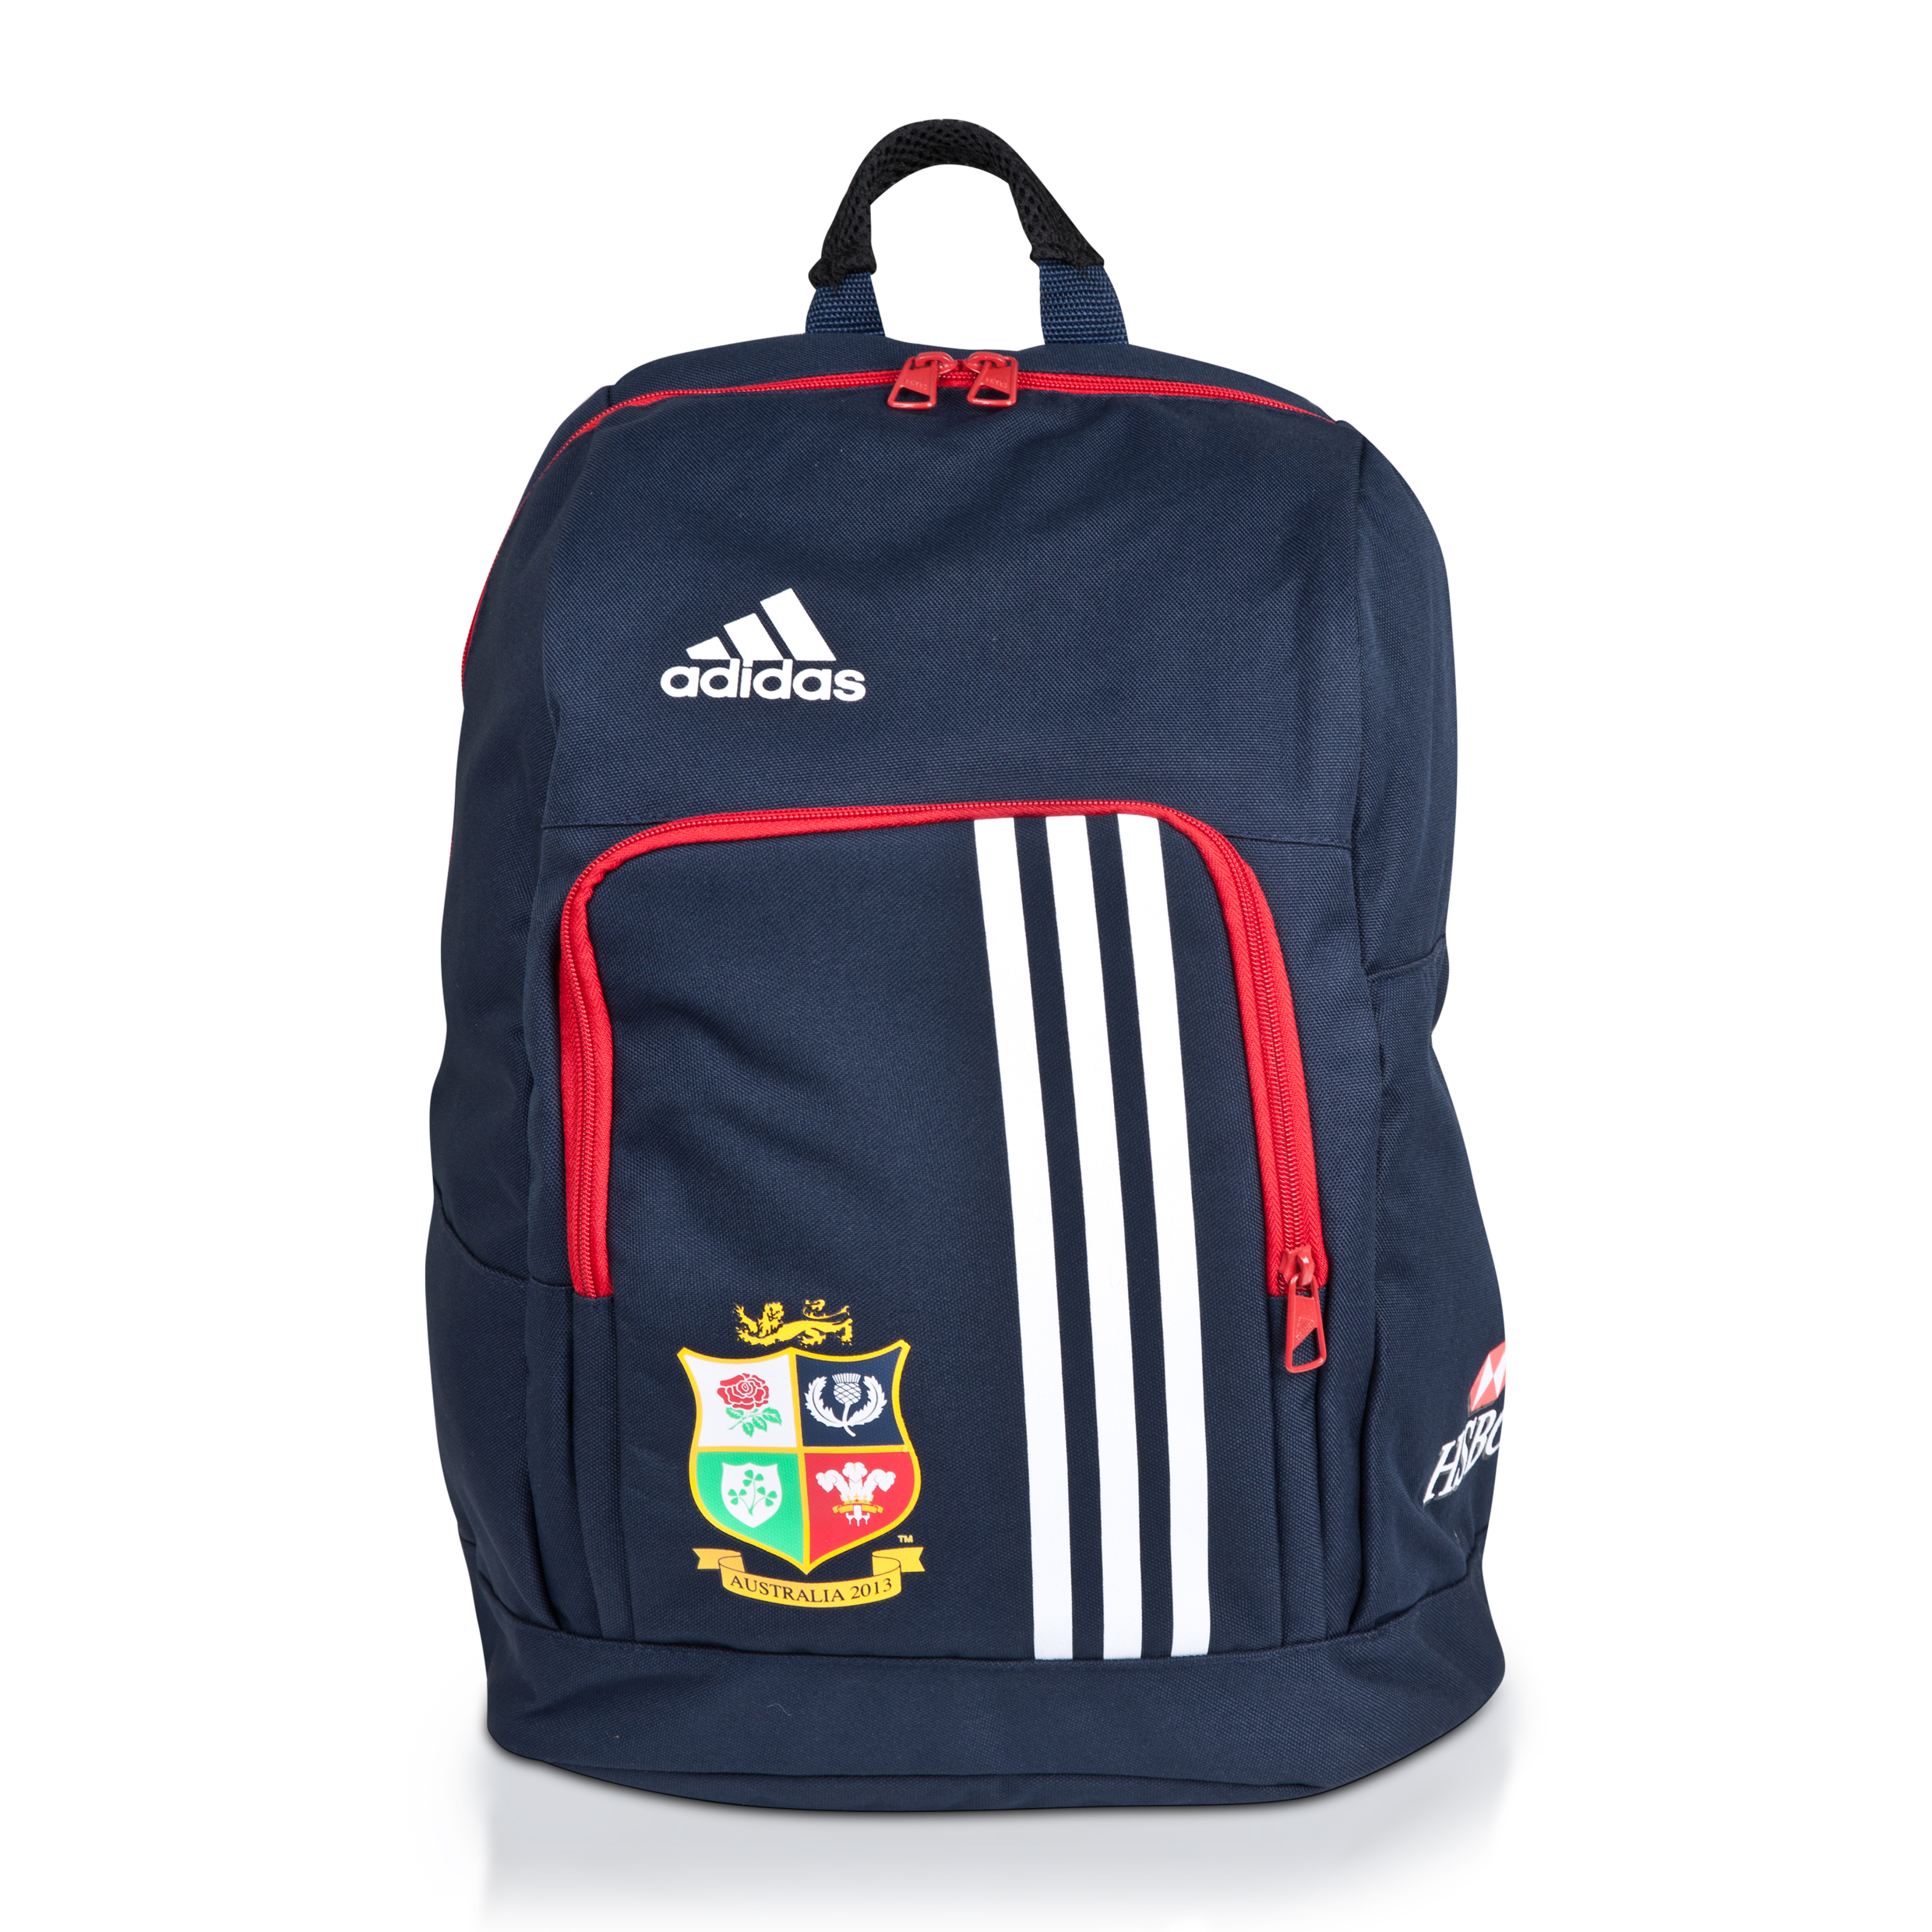 Adidas British and Irish Lions Backpack - Collegiate Navy/University Red